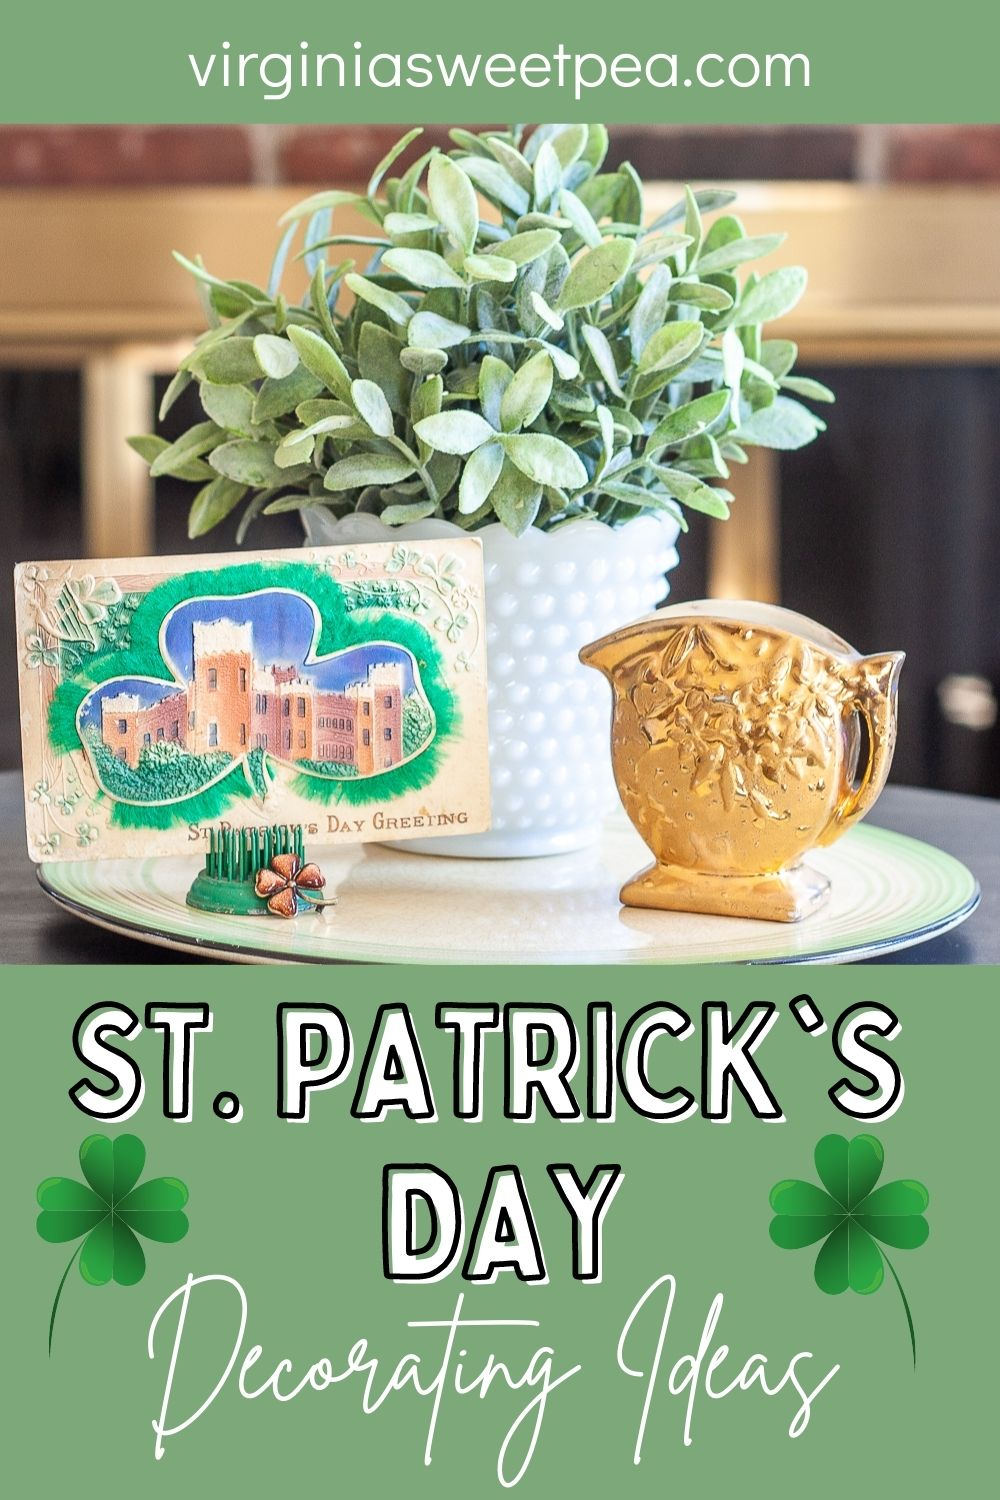 Bring the St. Patrick's Day celebration into your home by decorating for the season with St. Patrick's Day vignettes.  Get ideas to use in your home to celebrate this fun day. via @spaula